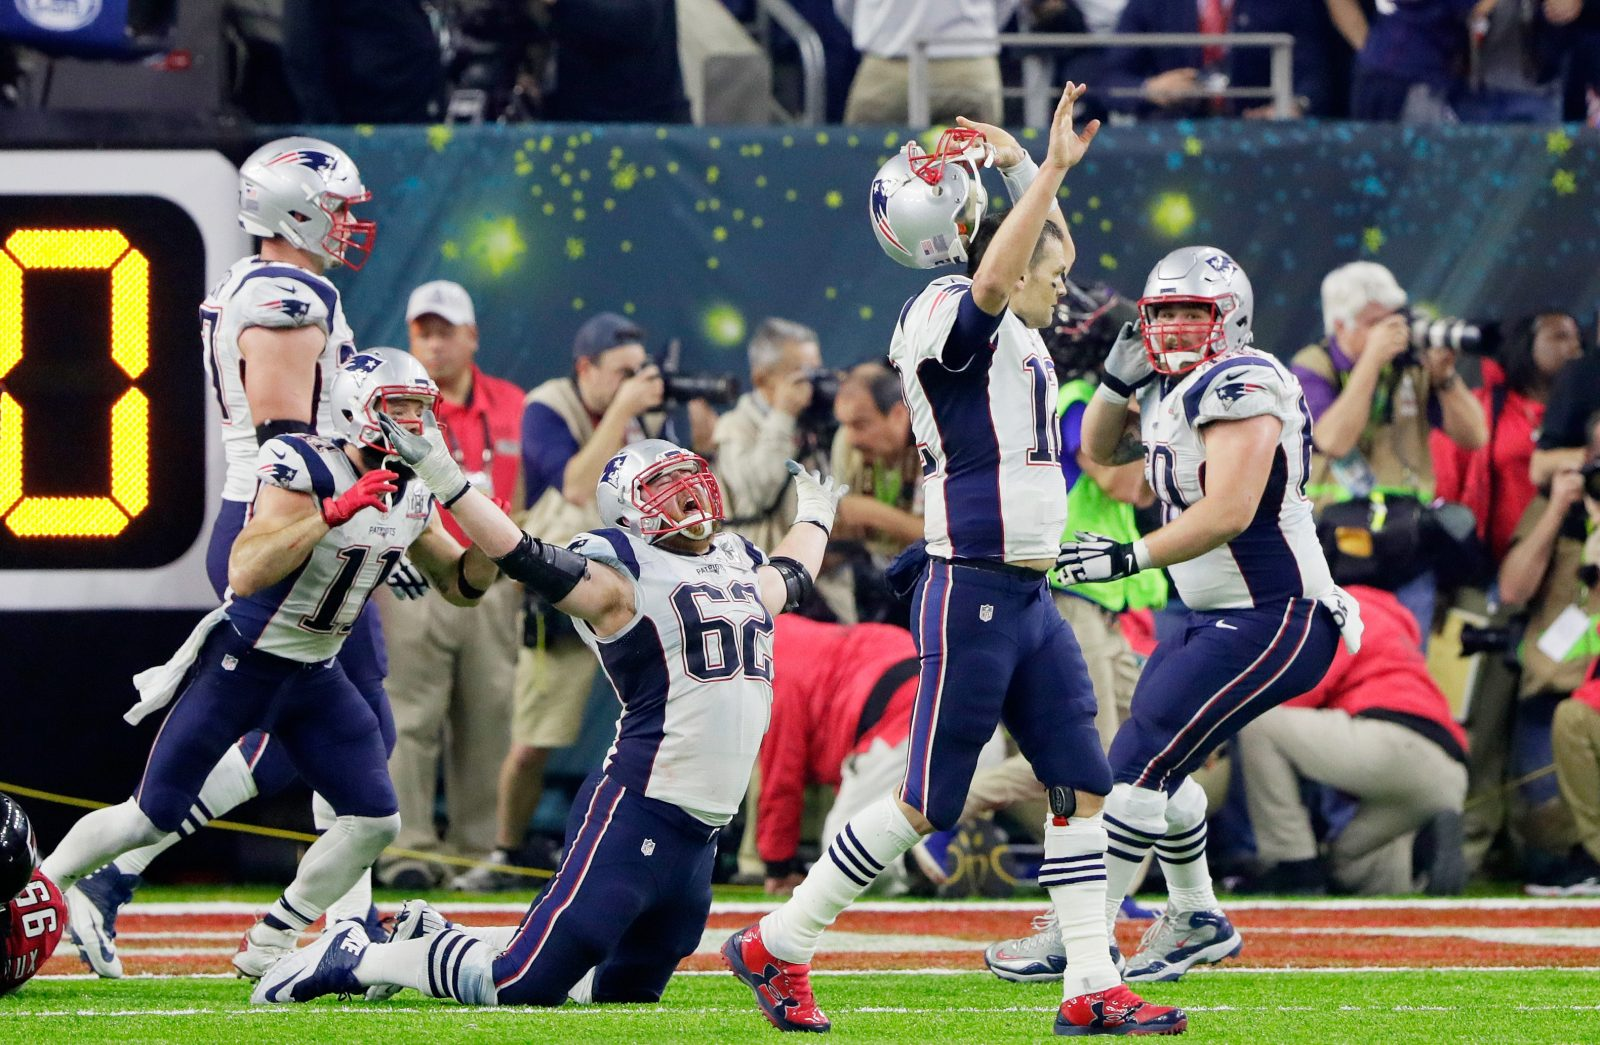 Tom Brady (12) and the New England Patriots react after their game-winning touchdown in overtime. (Getty Images)